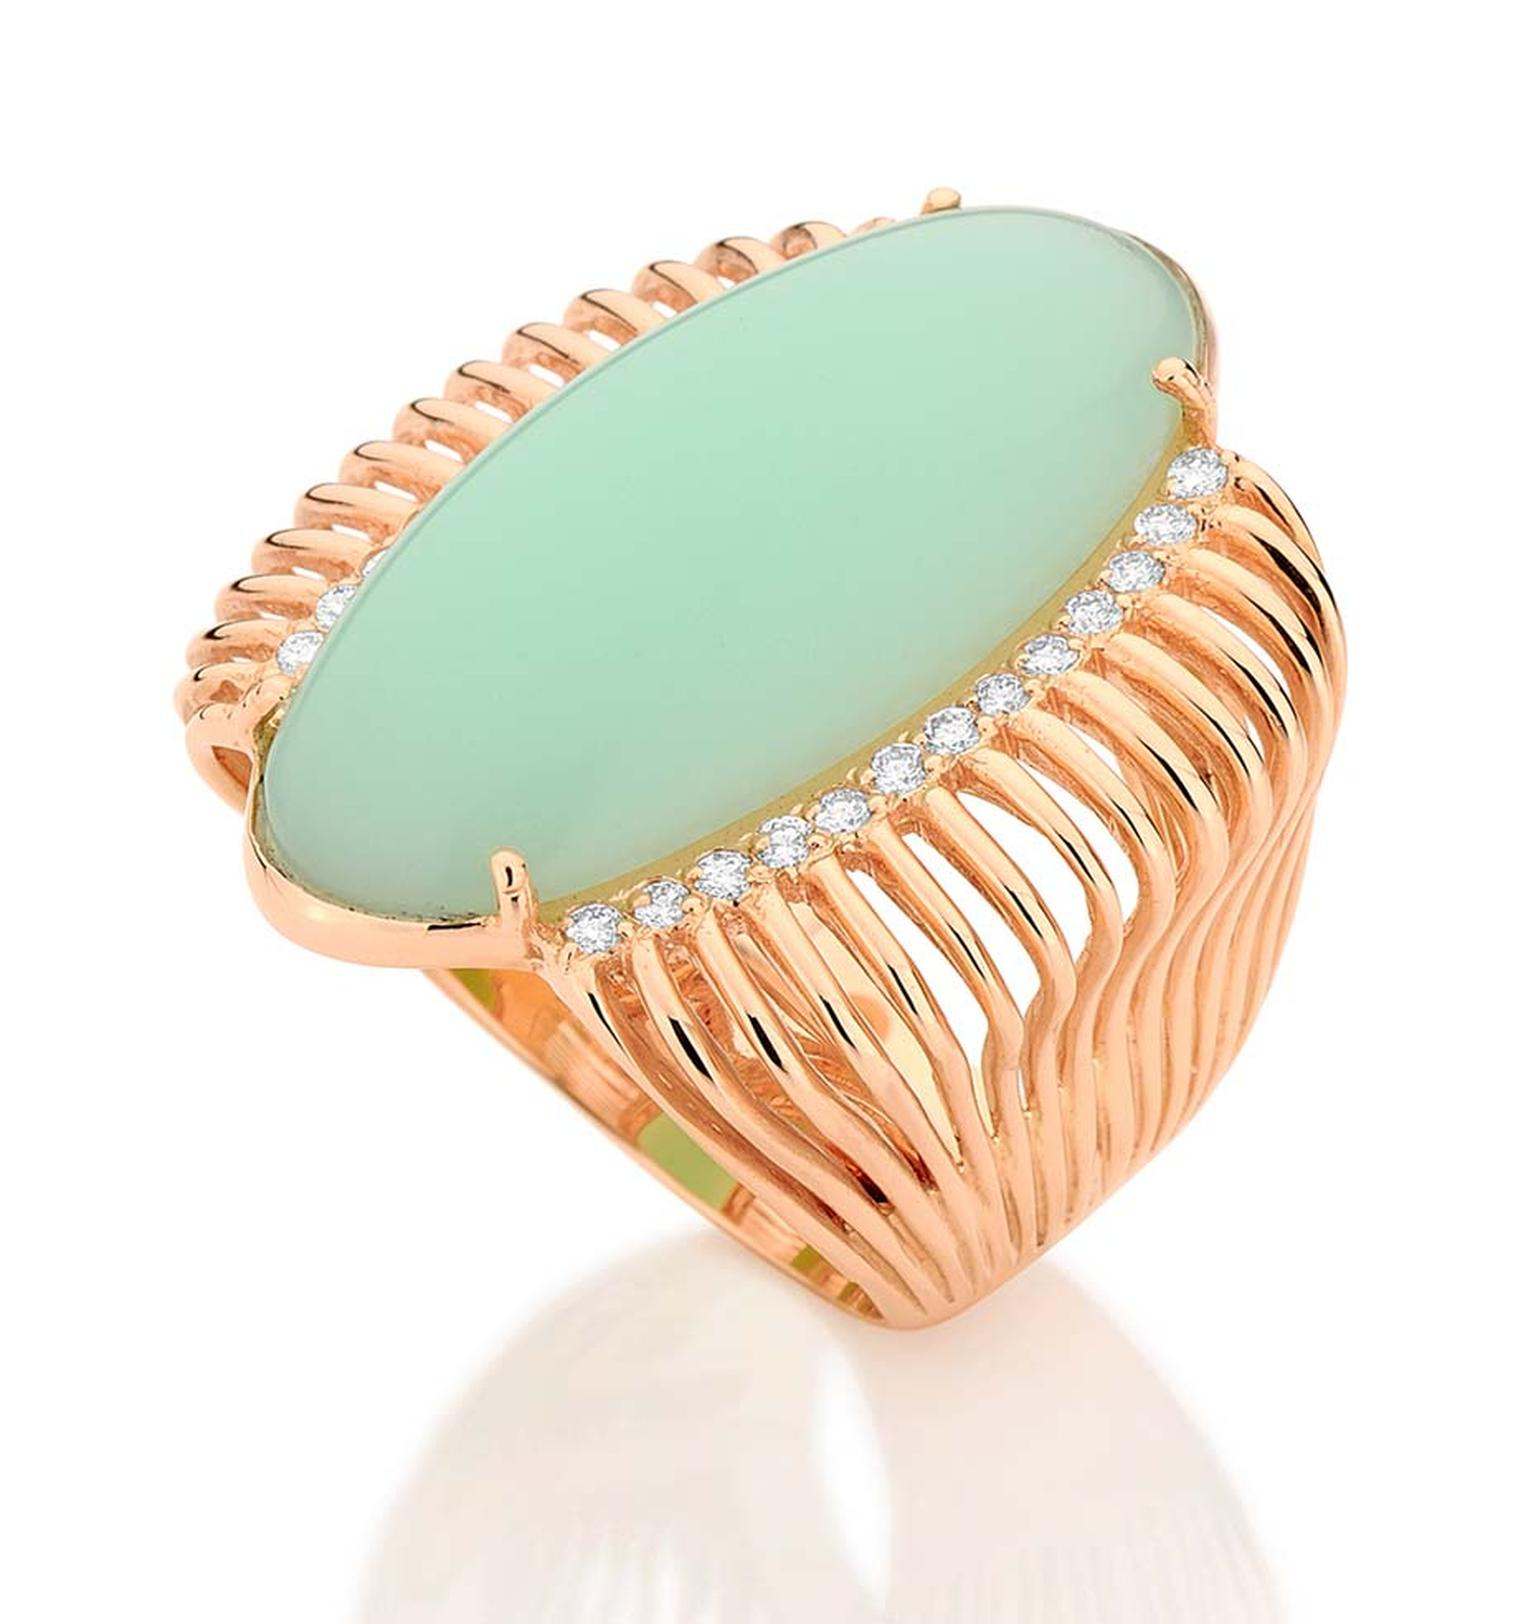 Carla Amorim Pistachio chrysoprase ring in pink gold with diamonds.